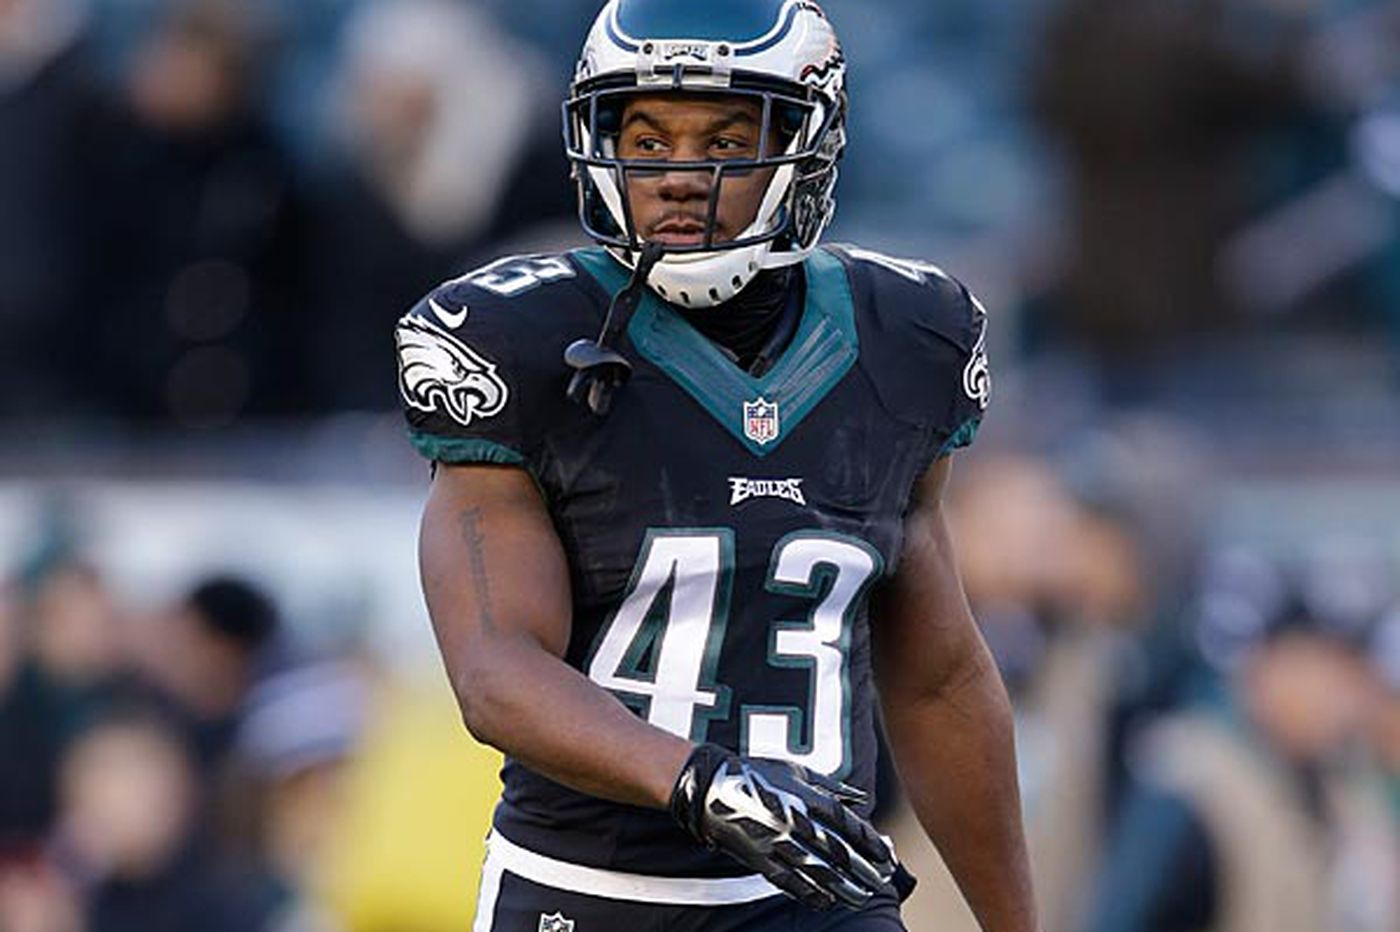 Sproles' production is down